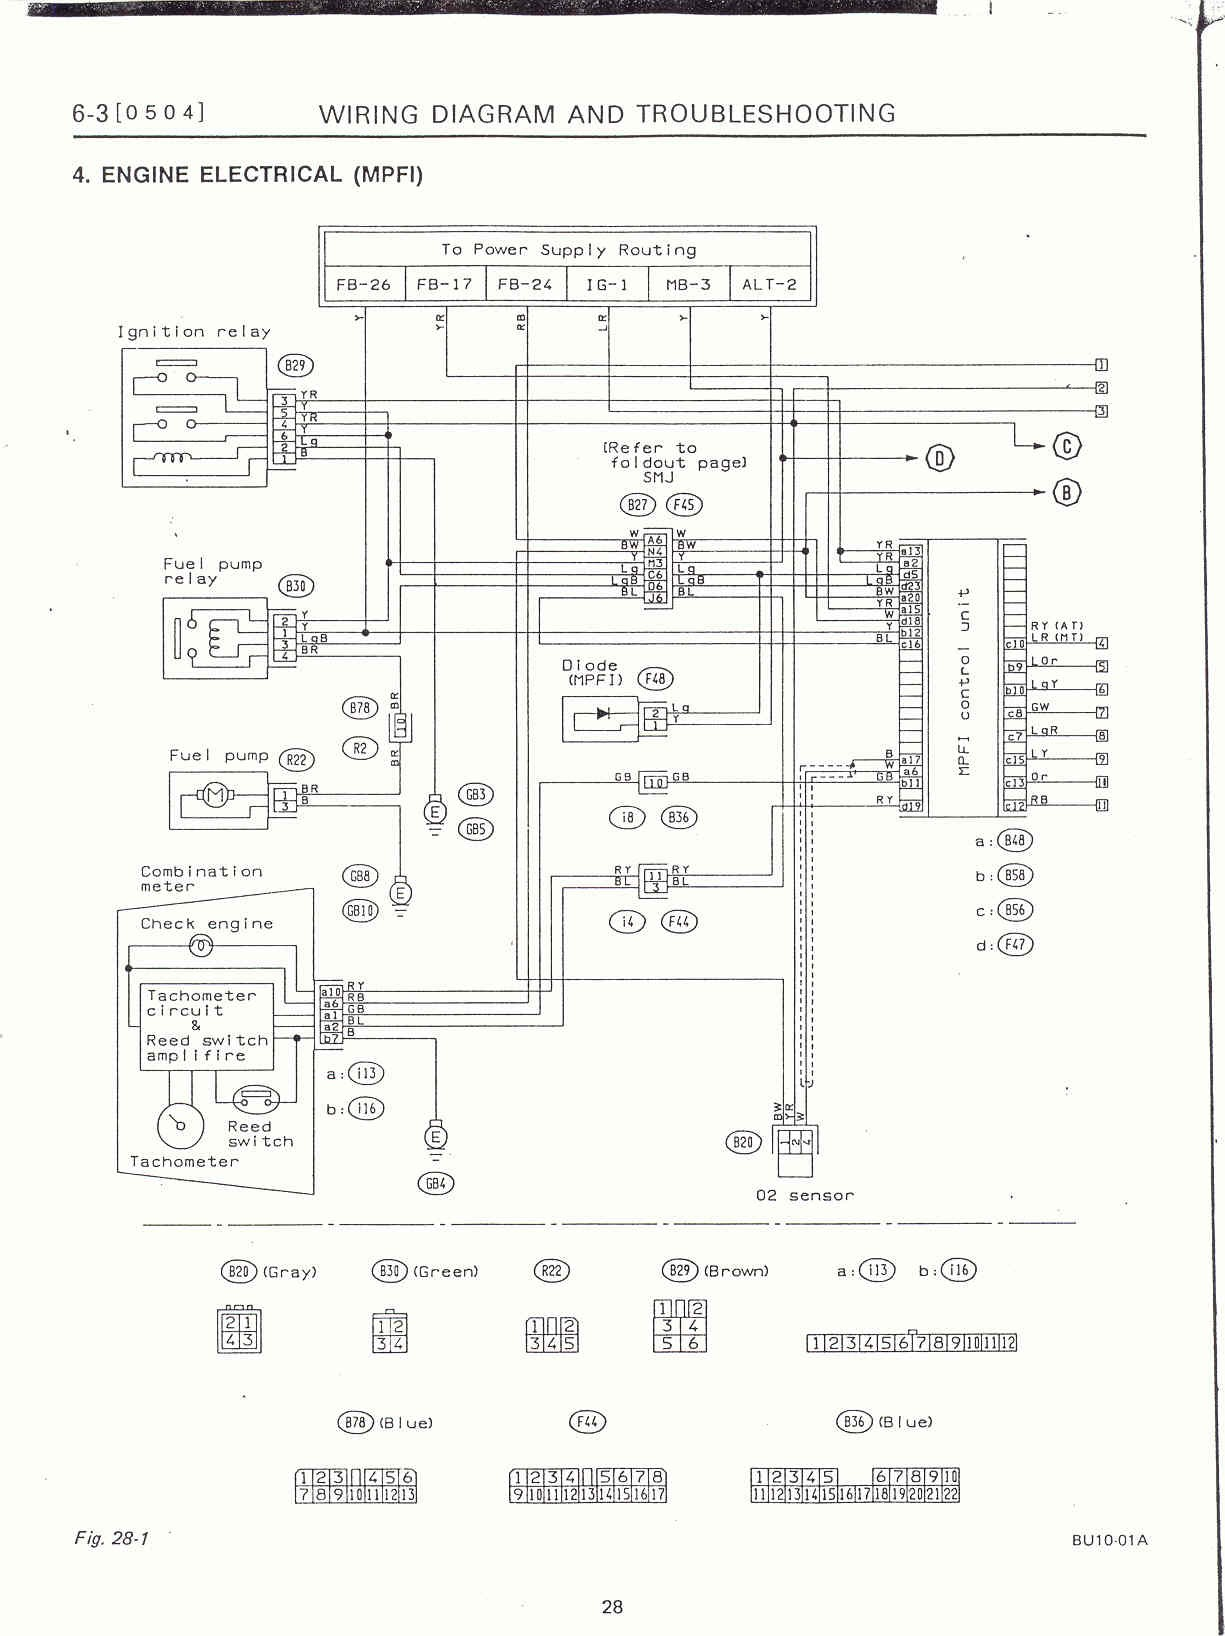 Subaru Impreza 1993 Wiring Diagram - Basic Guide Wiring Diagram •